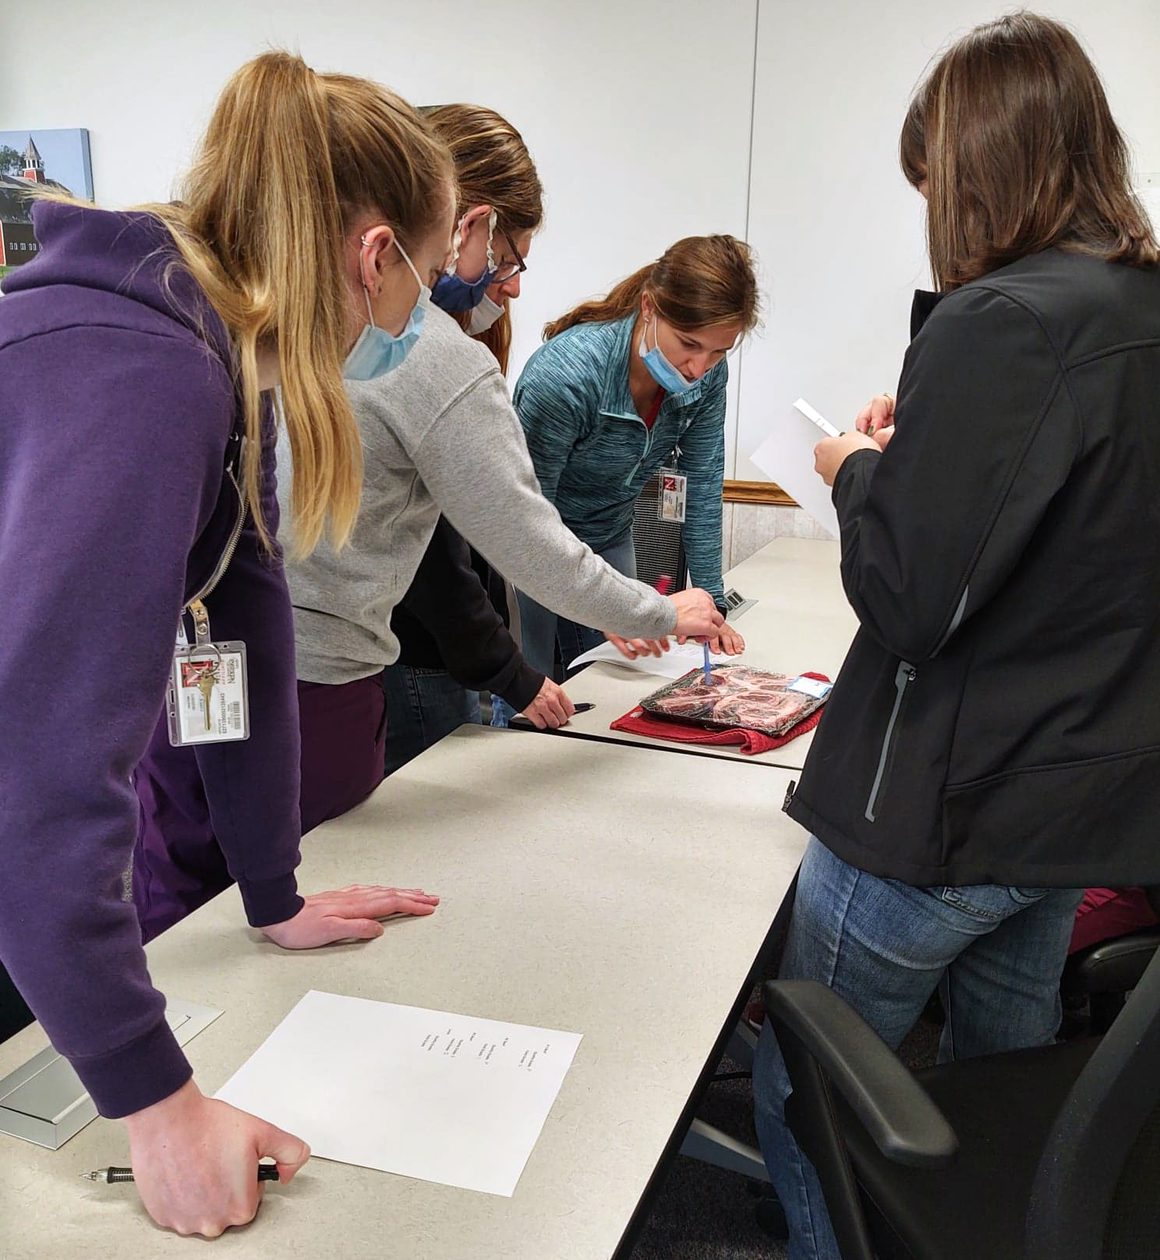 Students gather at a table to look at a cut of meat and determine its quality and grade.